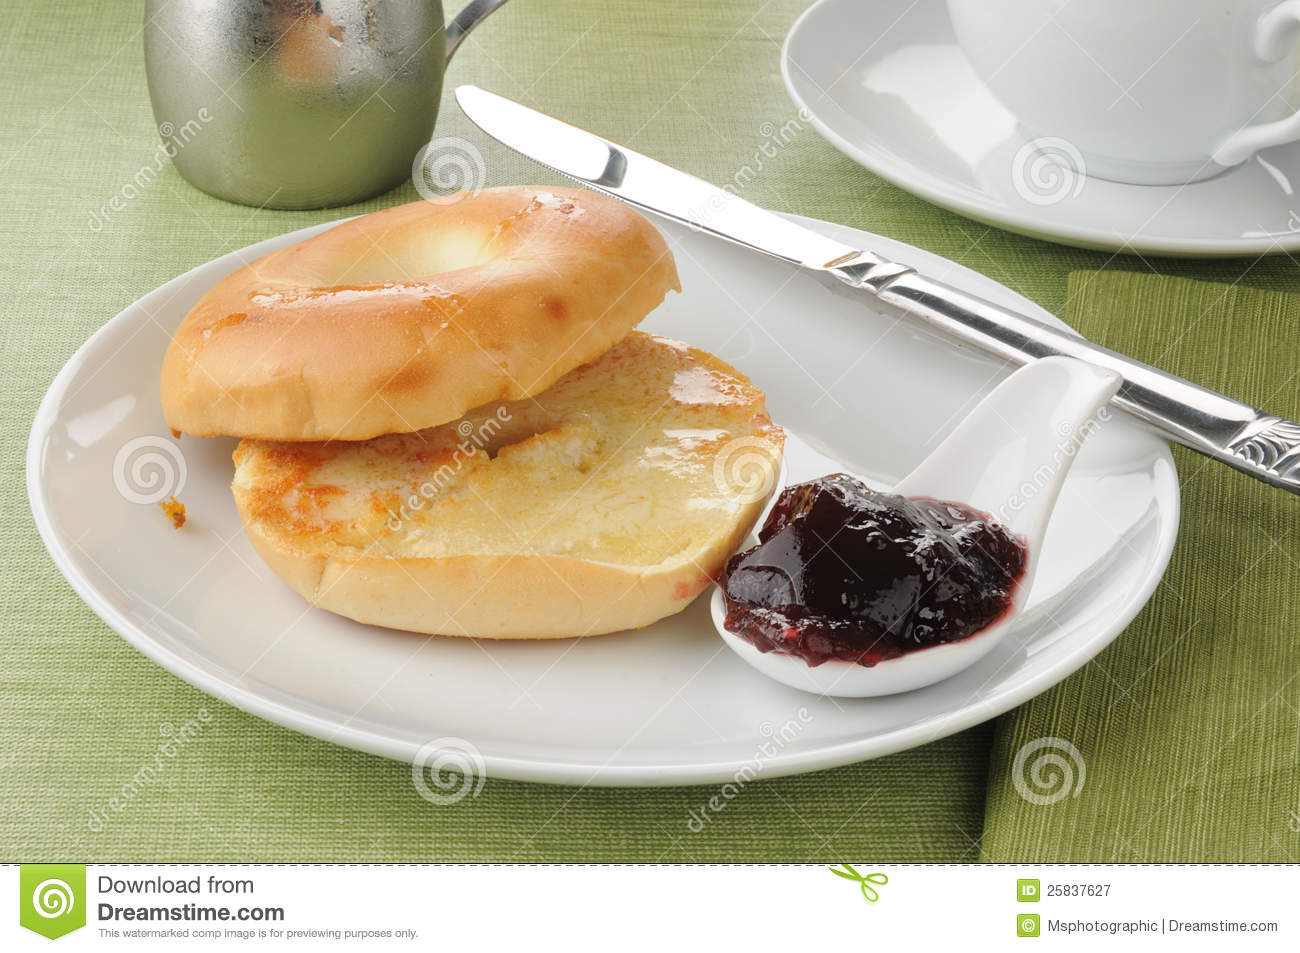 Buttered bagel with jam